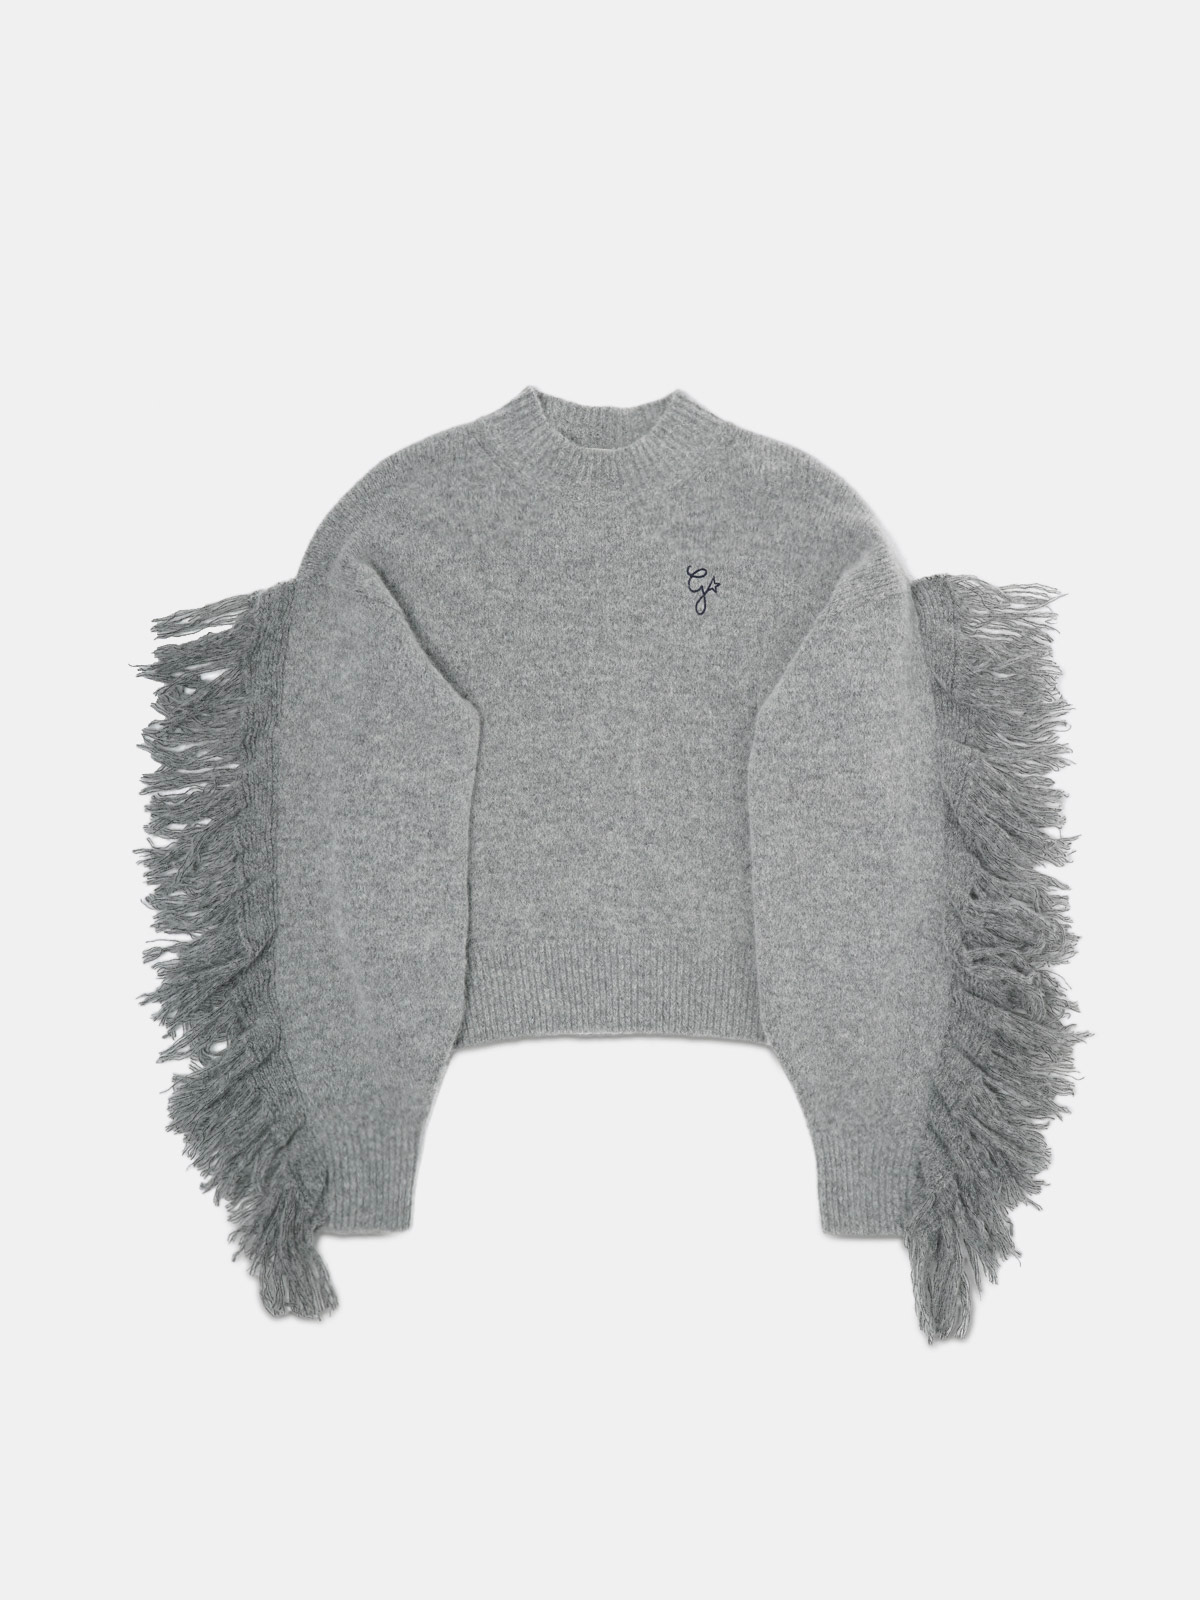 Golden Goose - Melange grey Cady sweater with fringing on the sleeves in